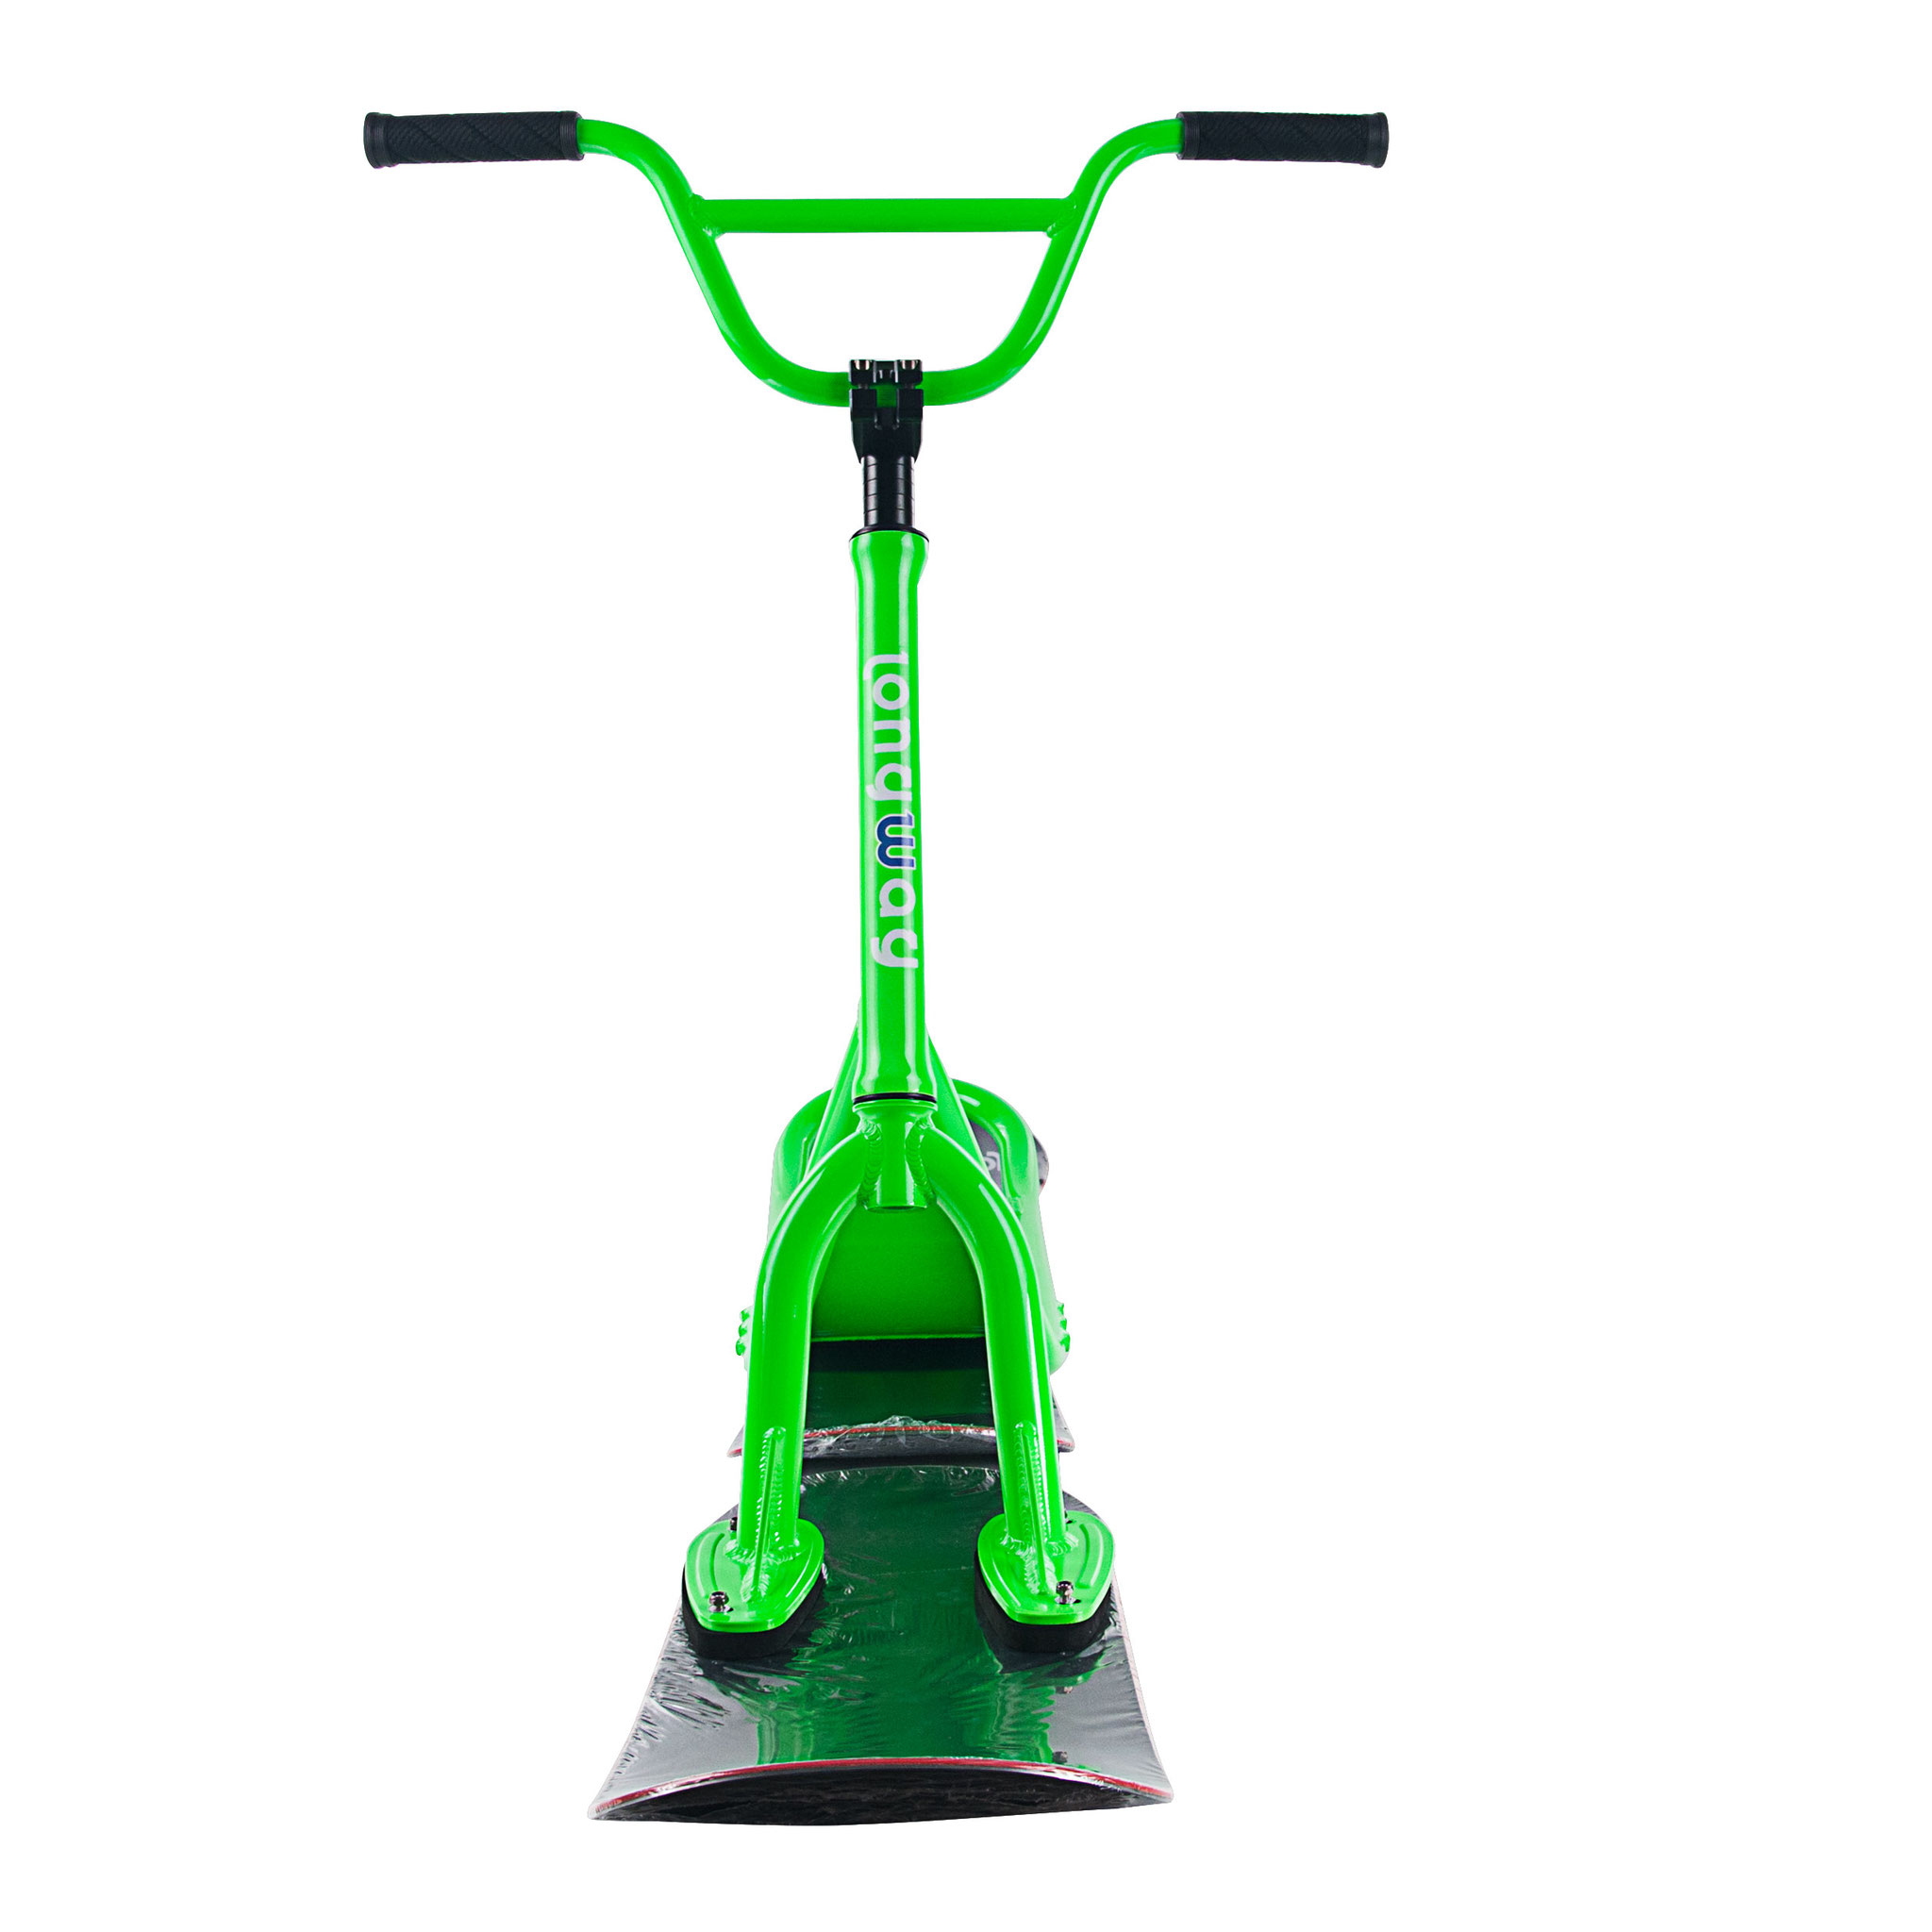 Longway Sports Snowscoot Suilbikes green 5